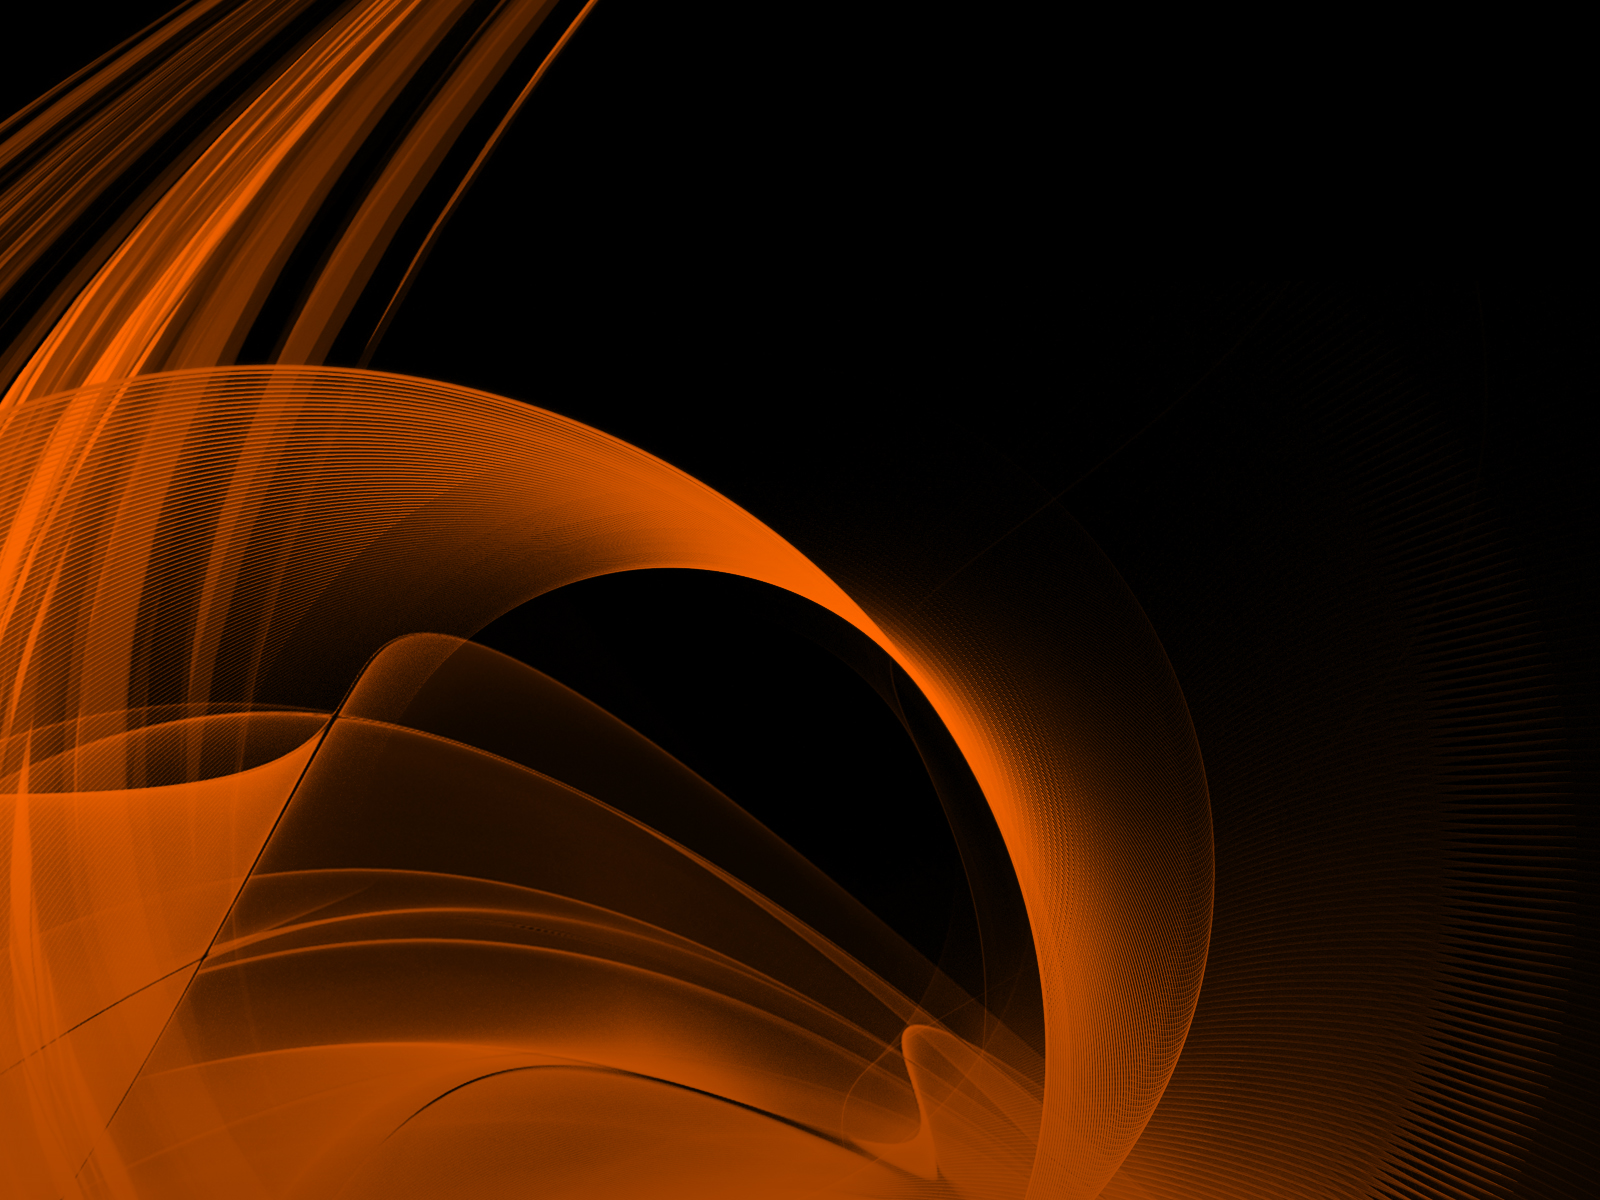 Black And Orange Abstract Background Bed Mattress Sale 1600x1200